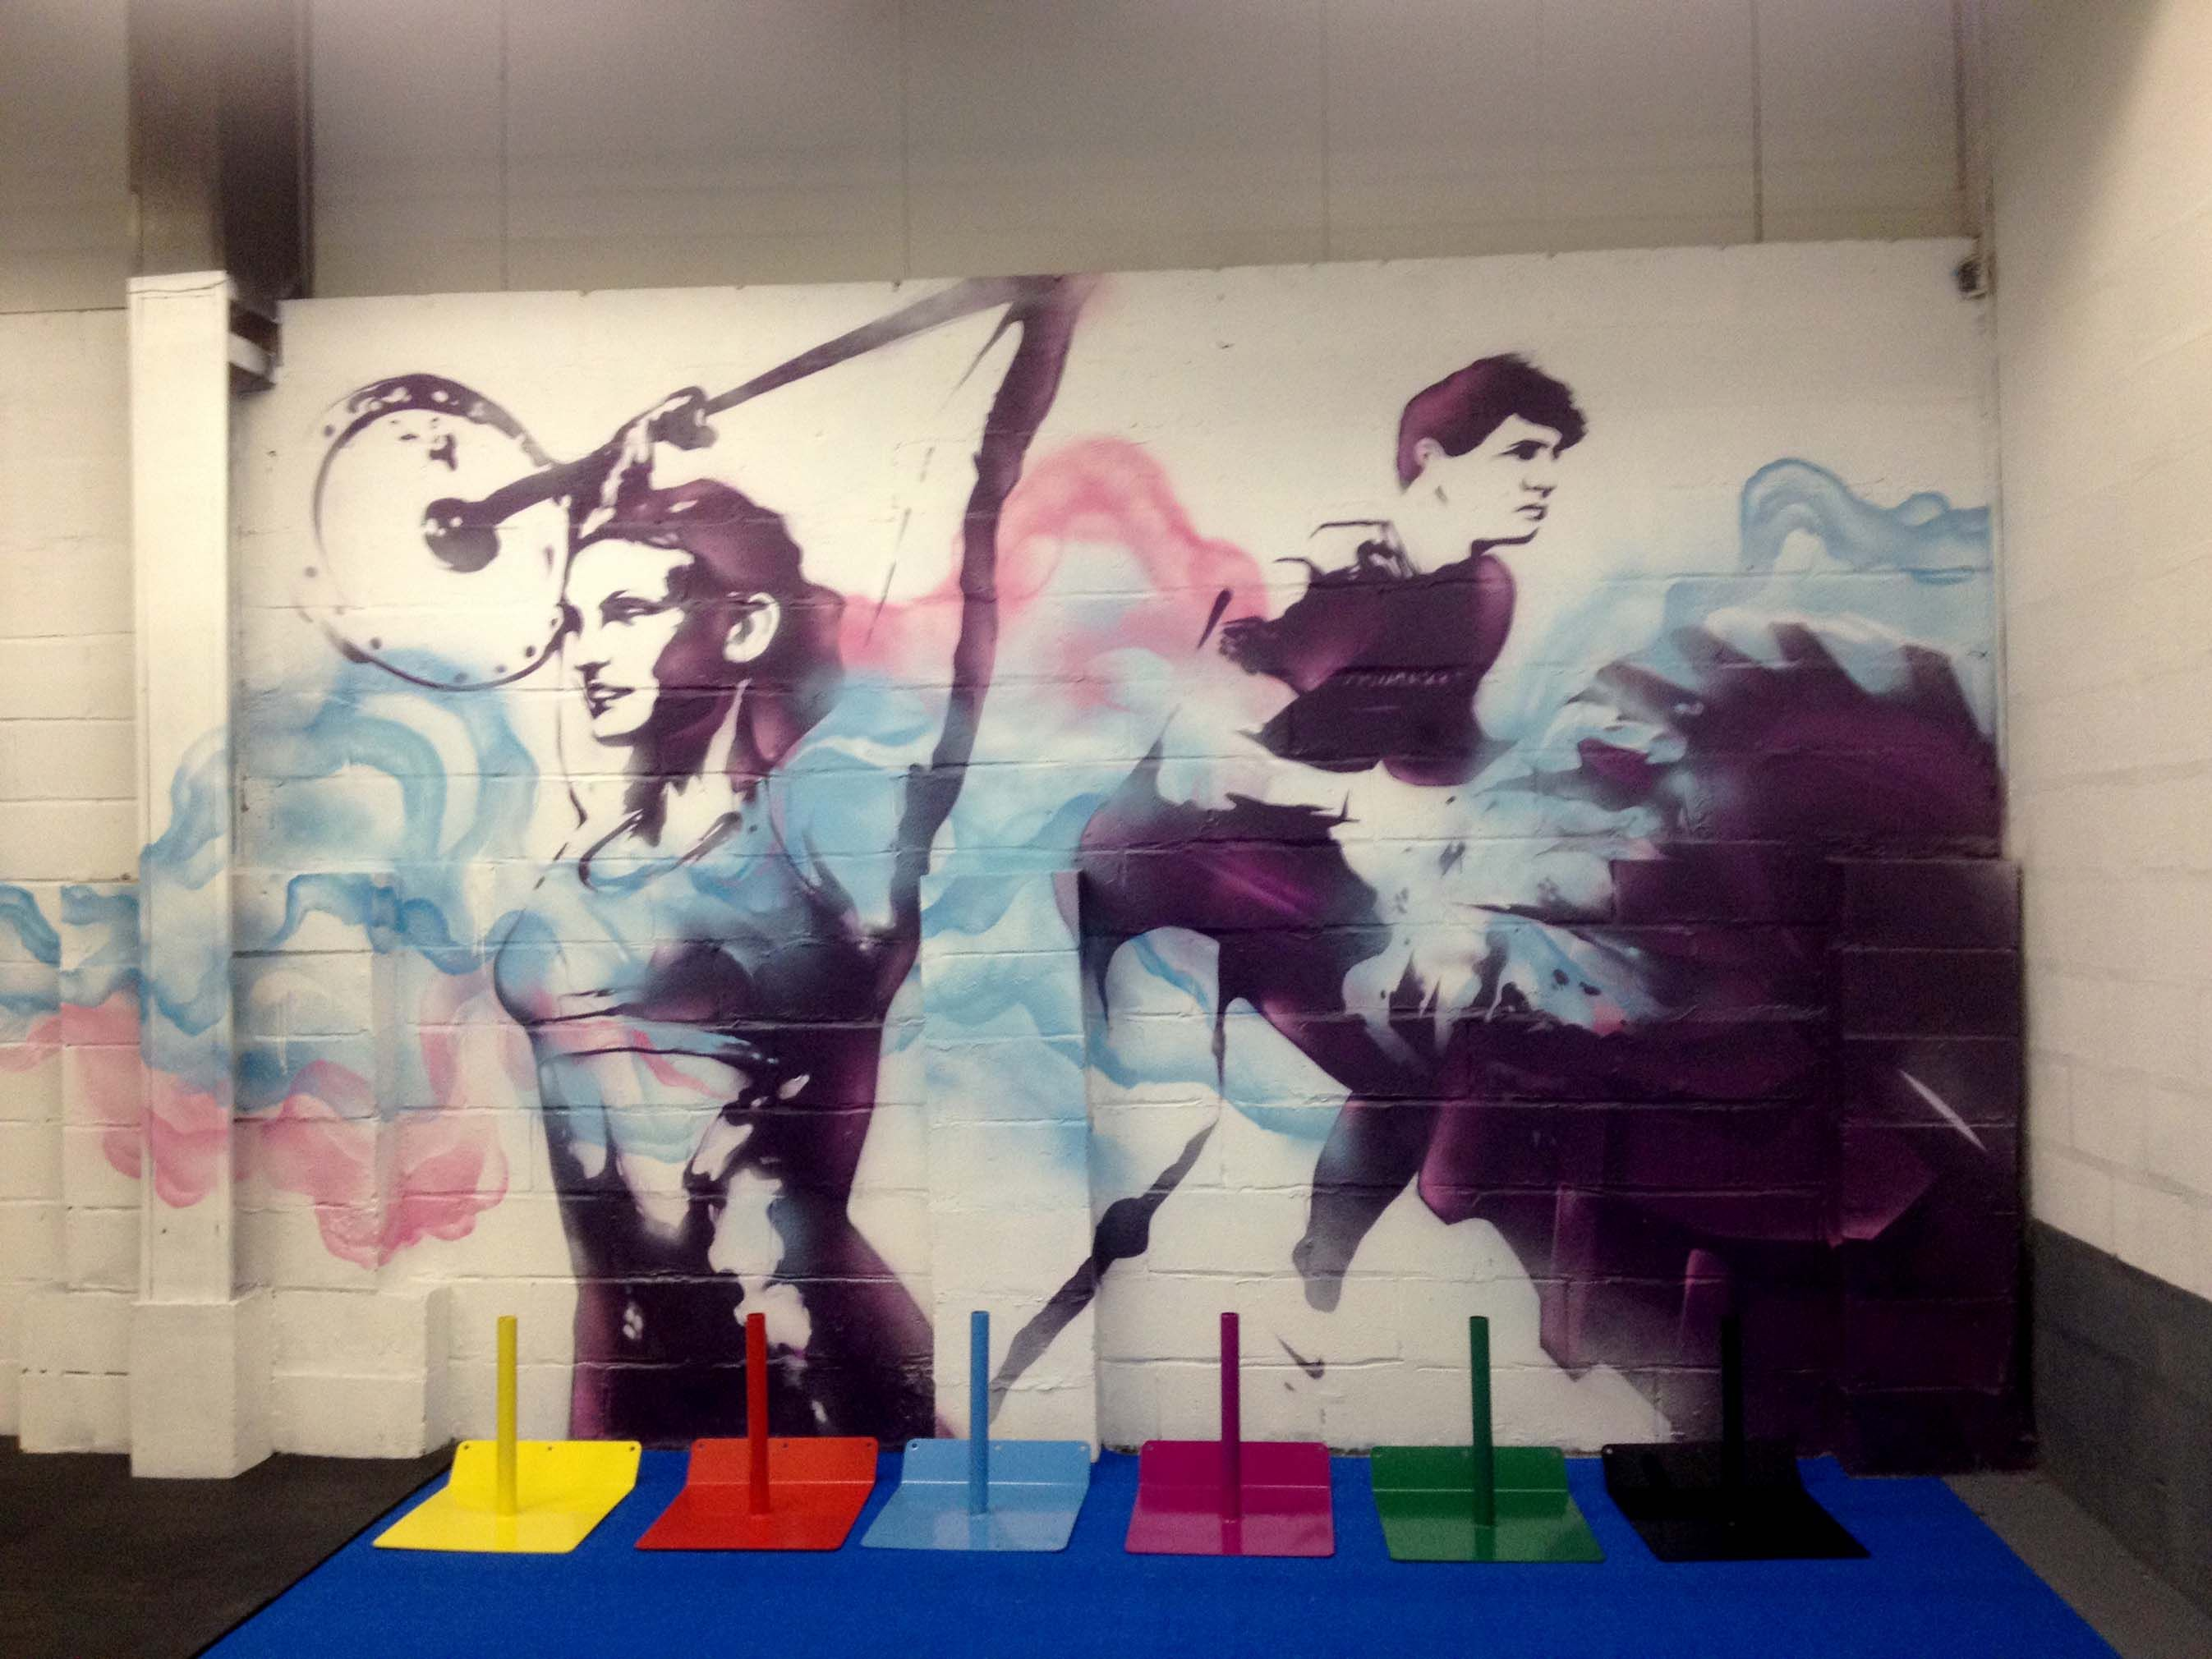 New Crossfit Gym Mural For WOD House